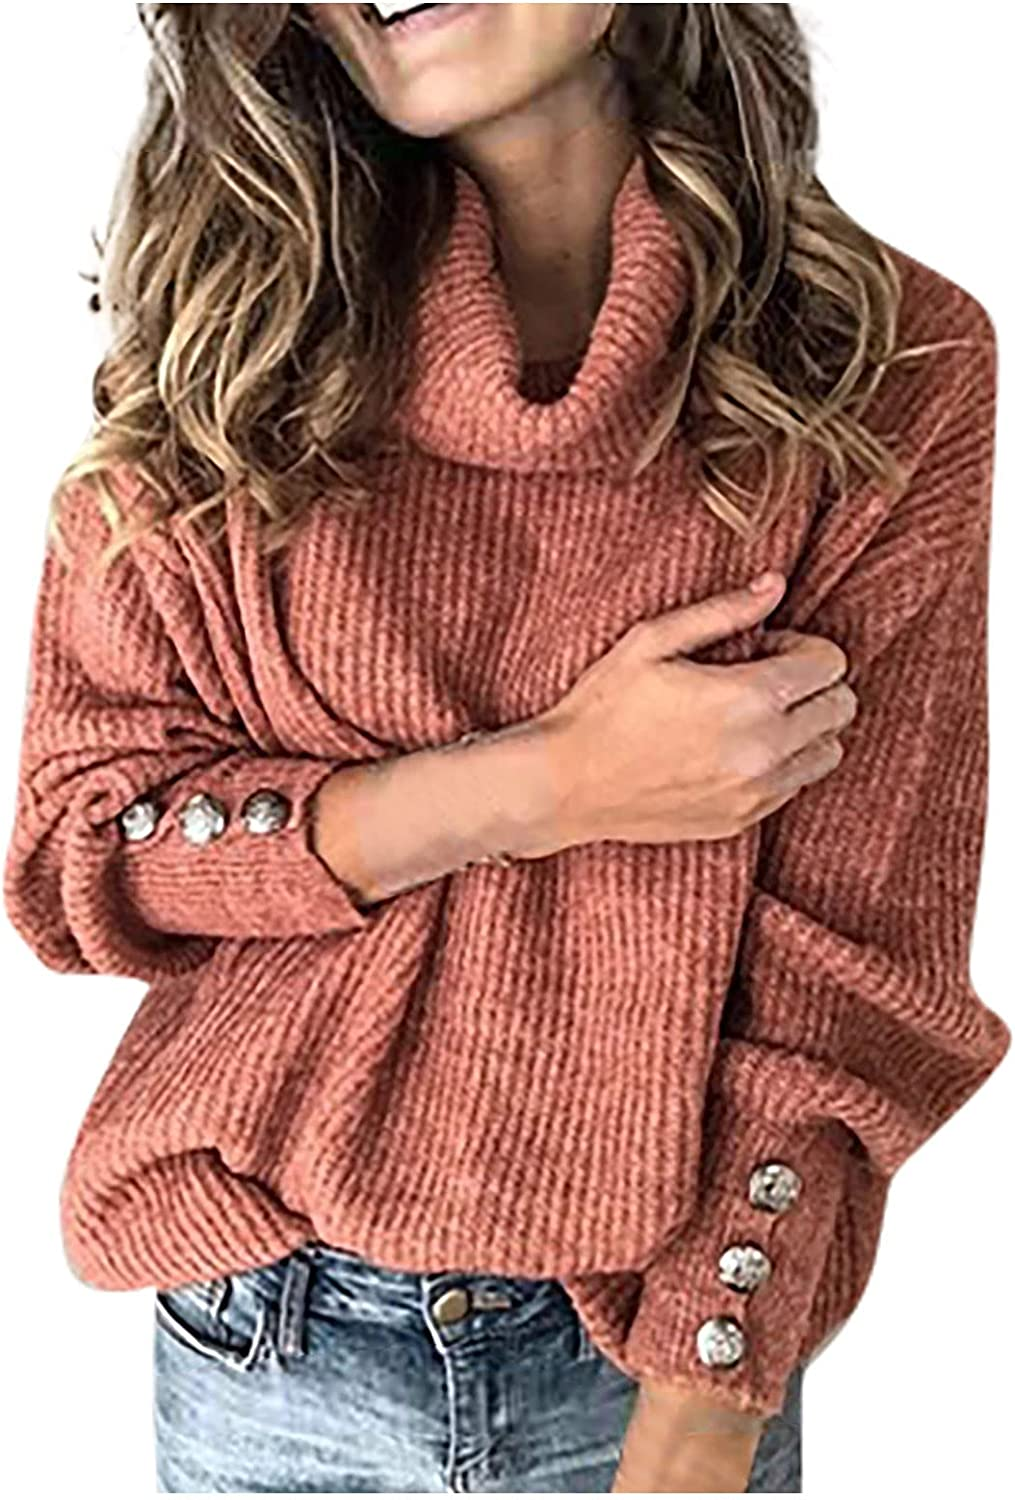 VonVonCo Pullover Sweaters for Women High Collar Neck Pullover Button Long Sleeve Loose Knitted Sweater Tops